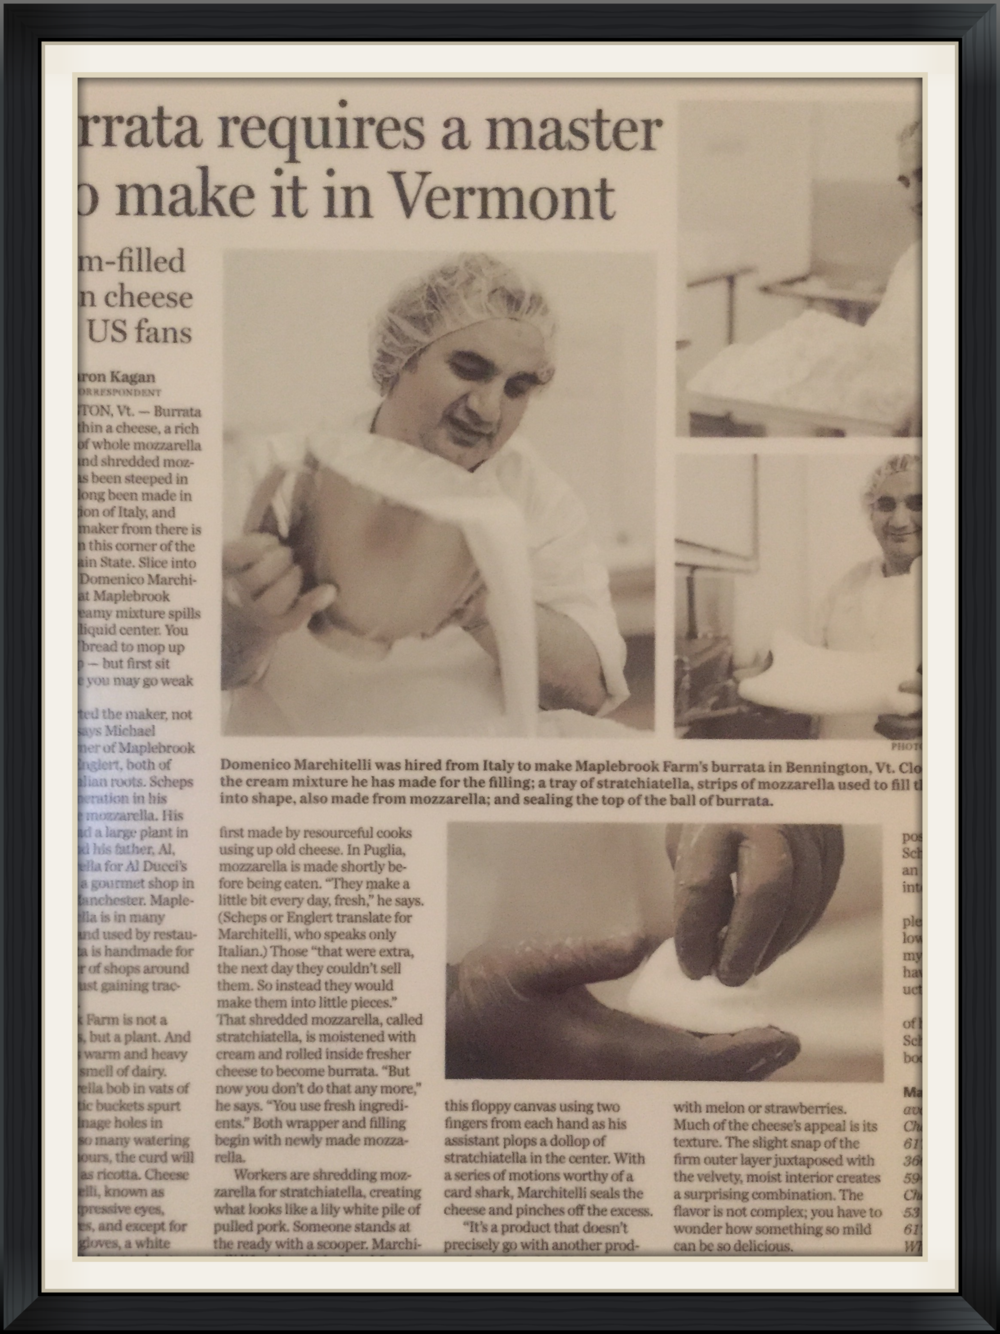 The Boston Globe March 29th, 2006